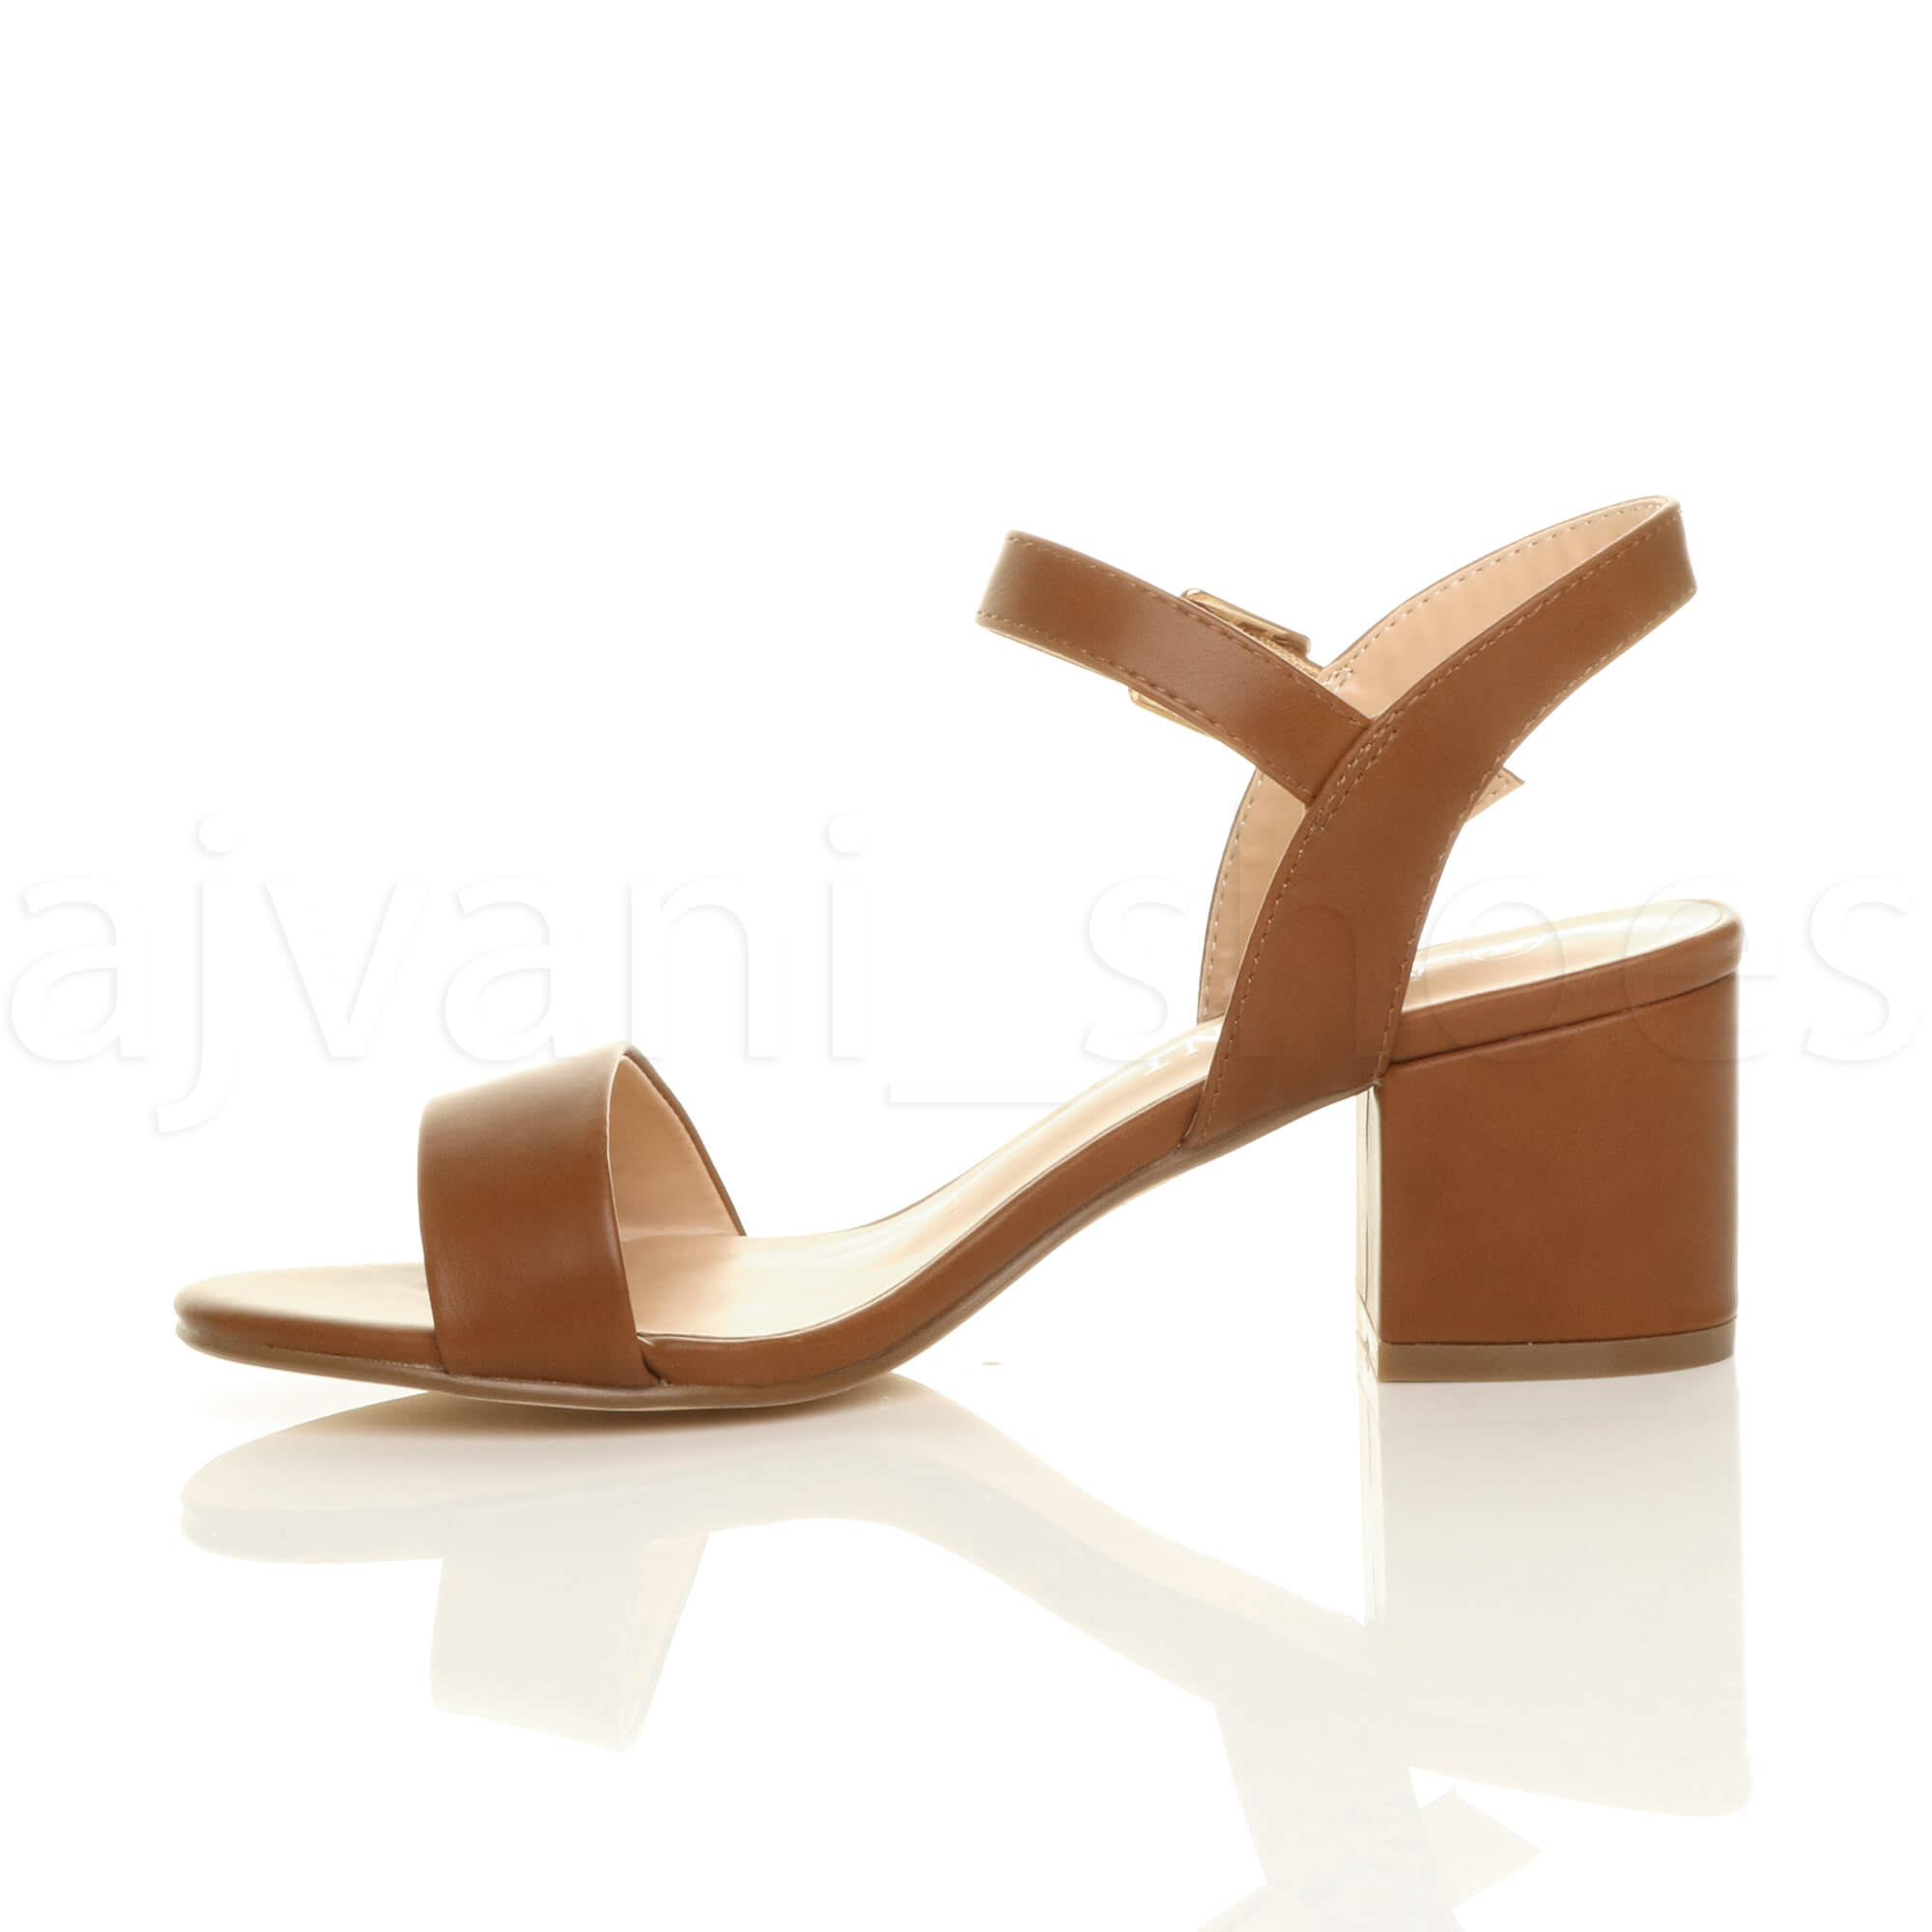 WOMENS-LADIES-MID-LOW-BLOCK-HEEL-PEEP-TOE-ANKLE-STRAP-STRAPPY-PARTY-SANDALS-SIZE thumbnail 140